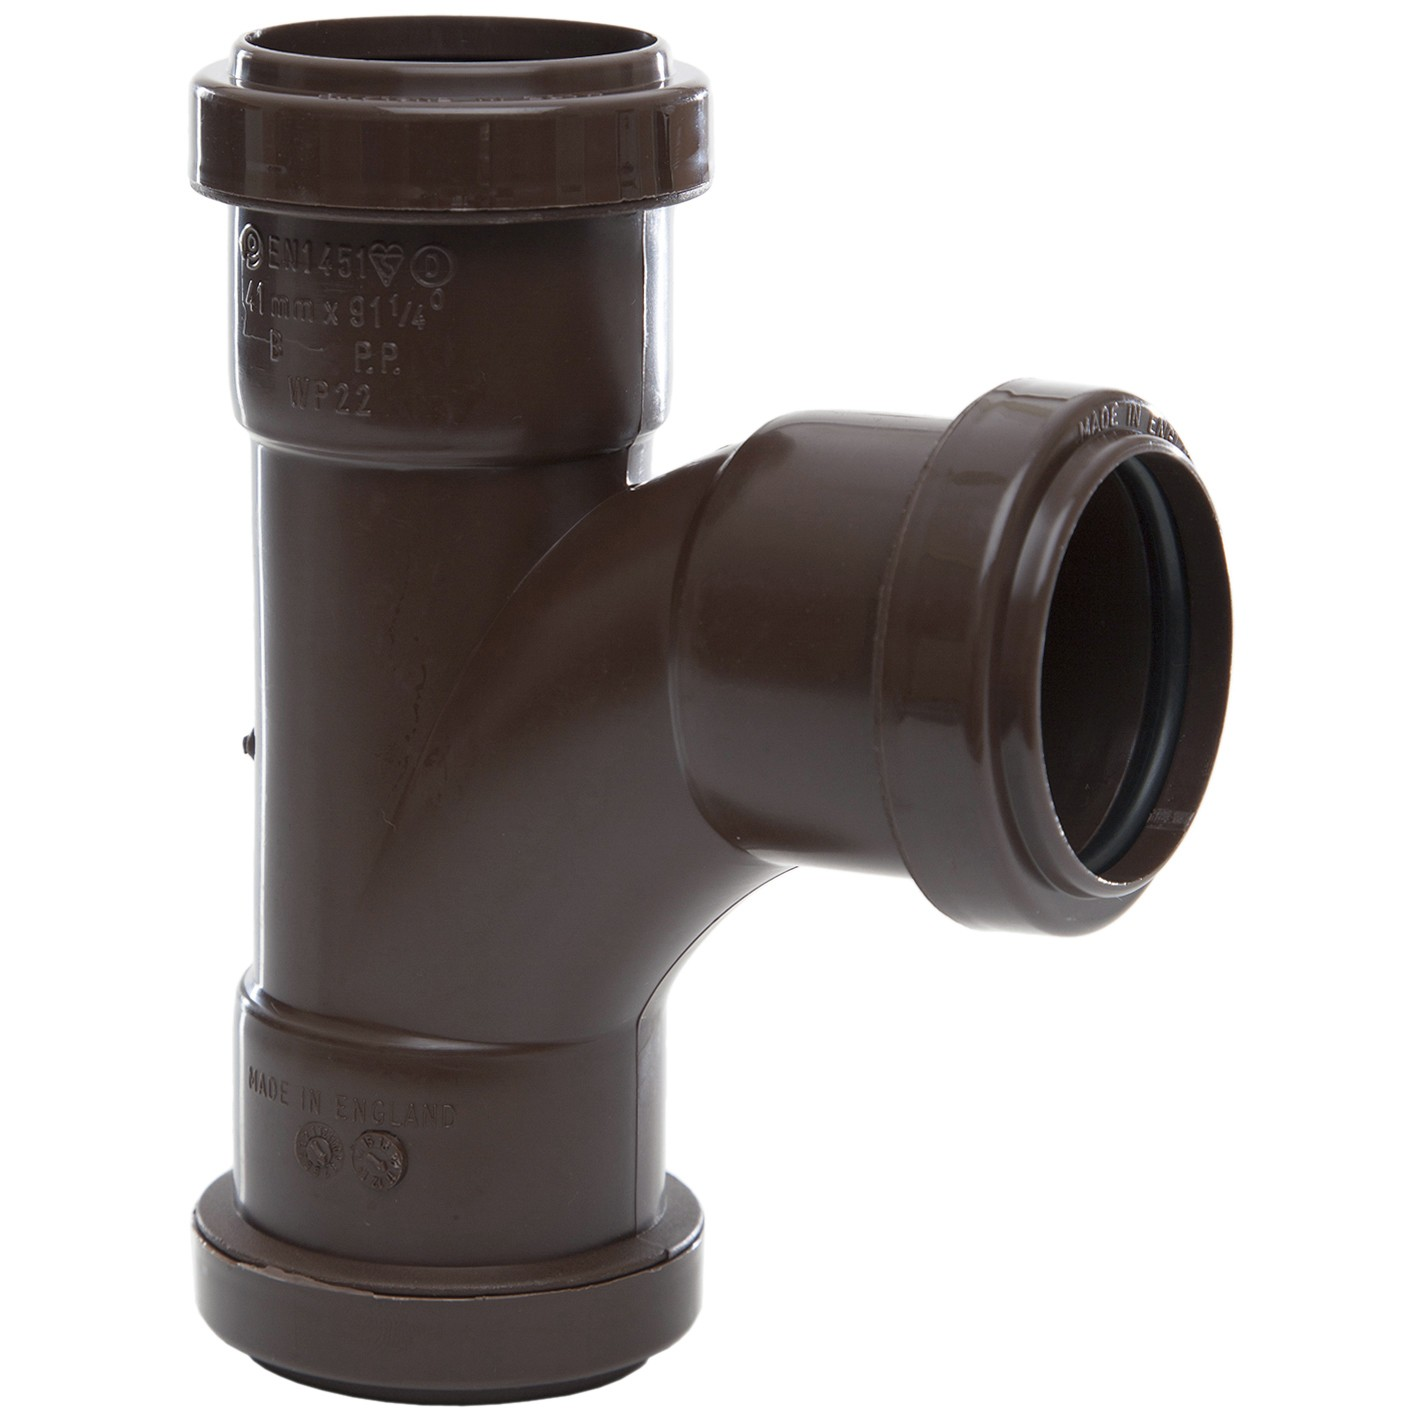 Polypipe 40mm Push Fit Waste 91.25 Degree Swept Tee - Brown